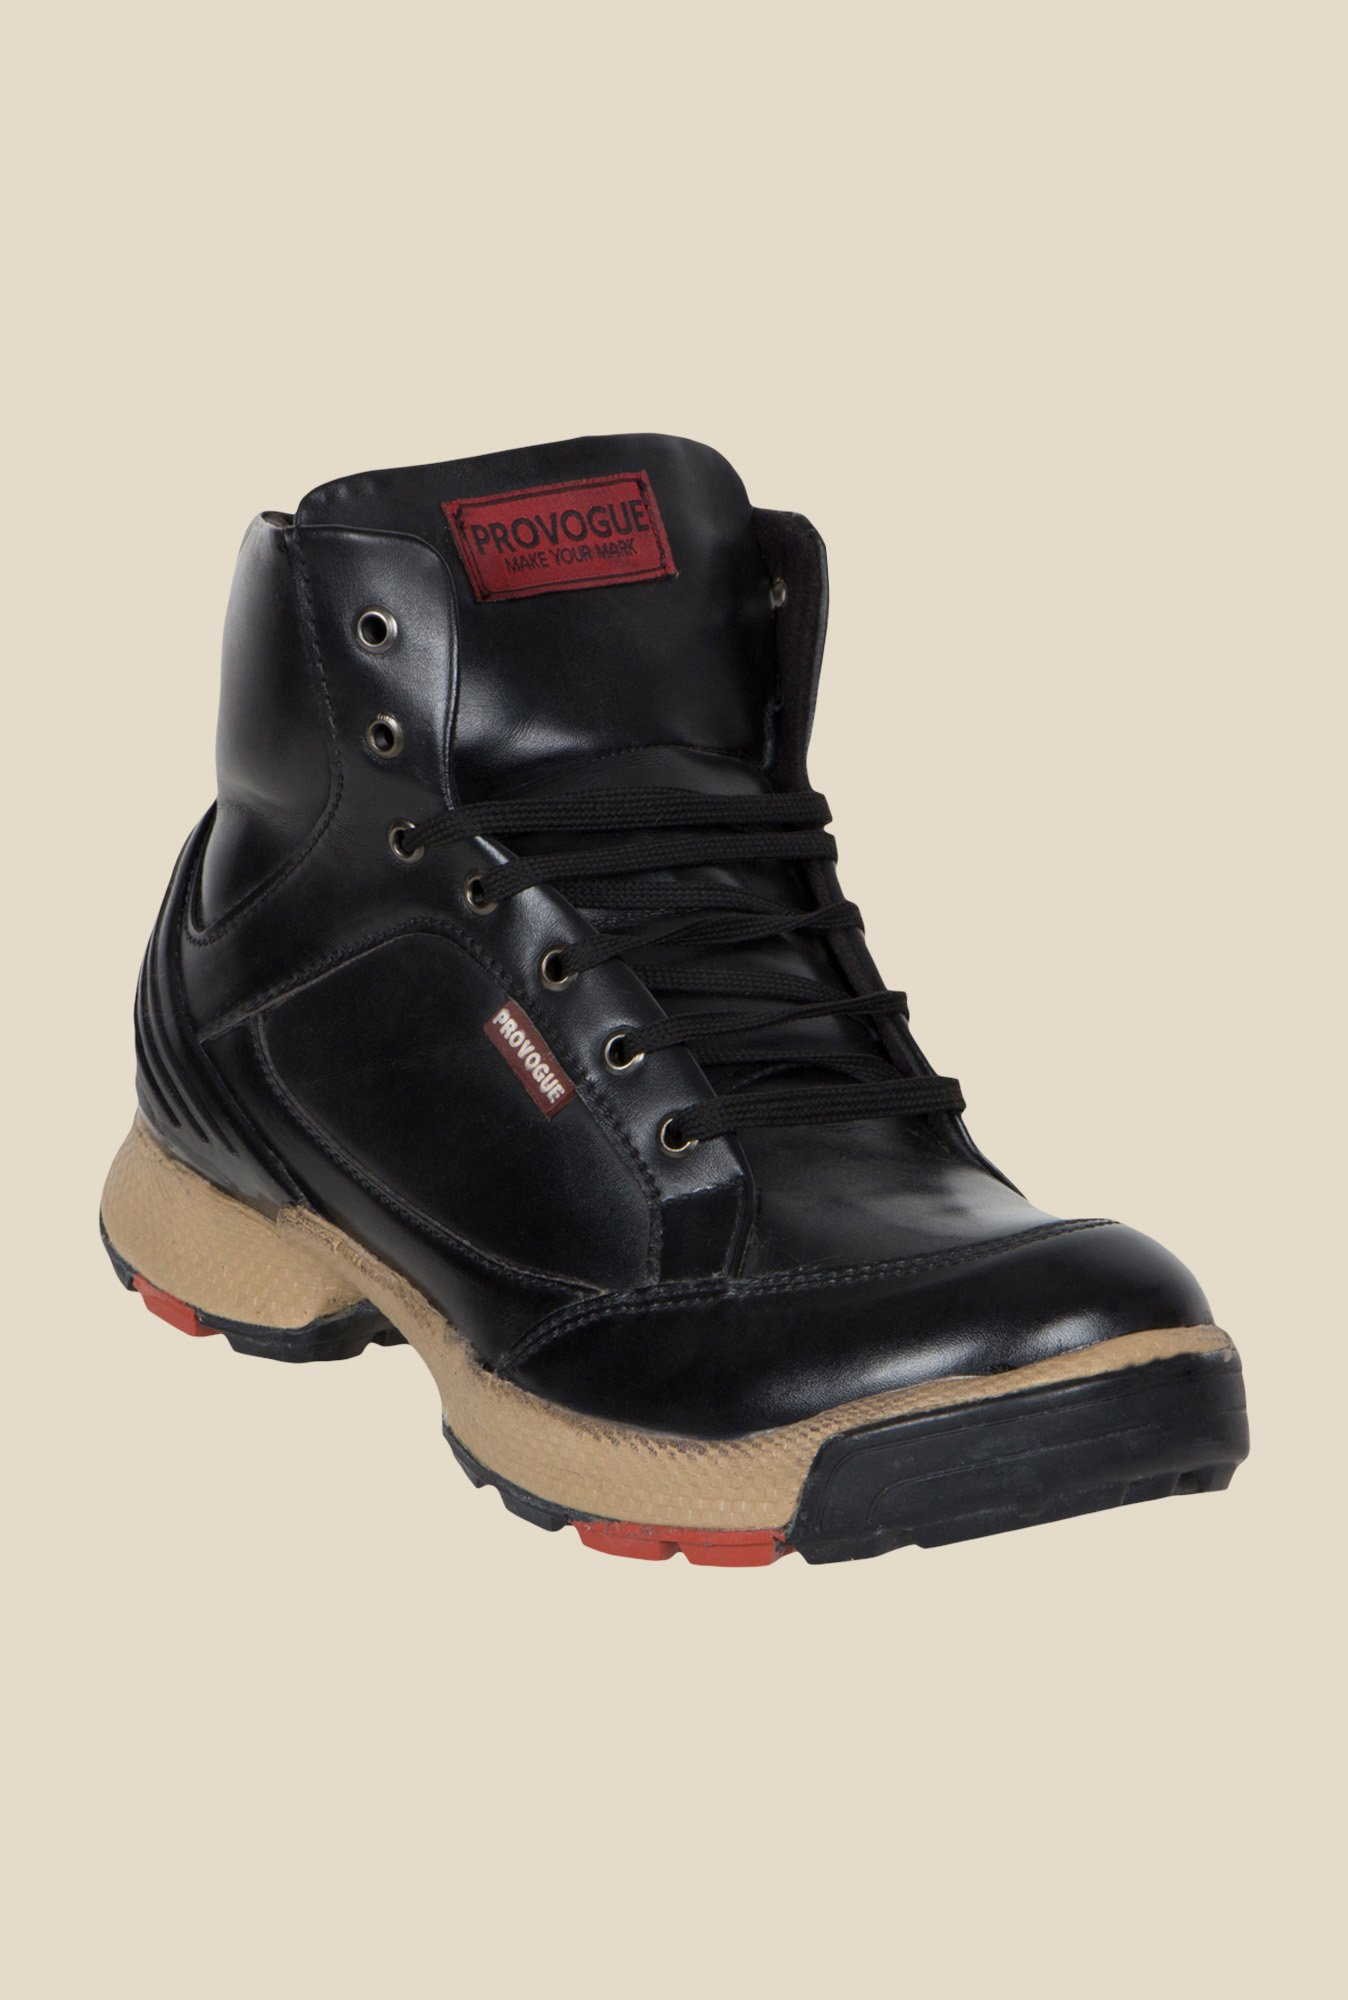 Provogue Black Biker Boots